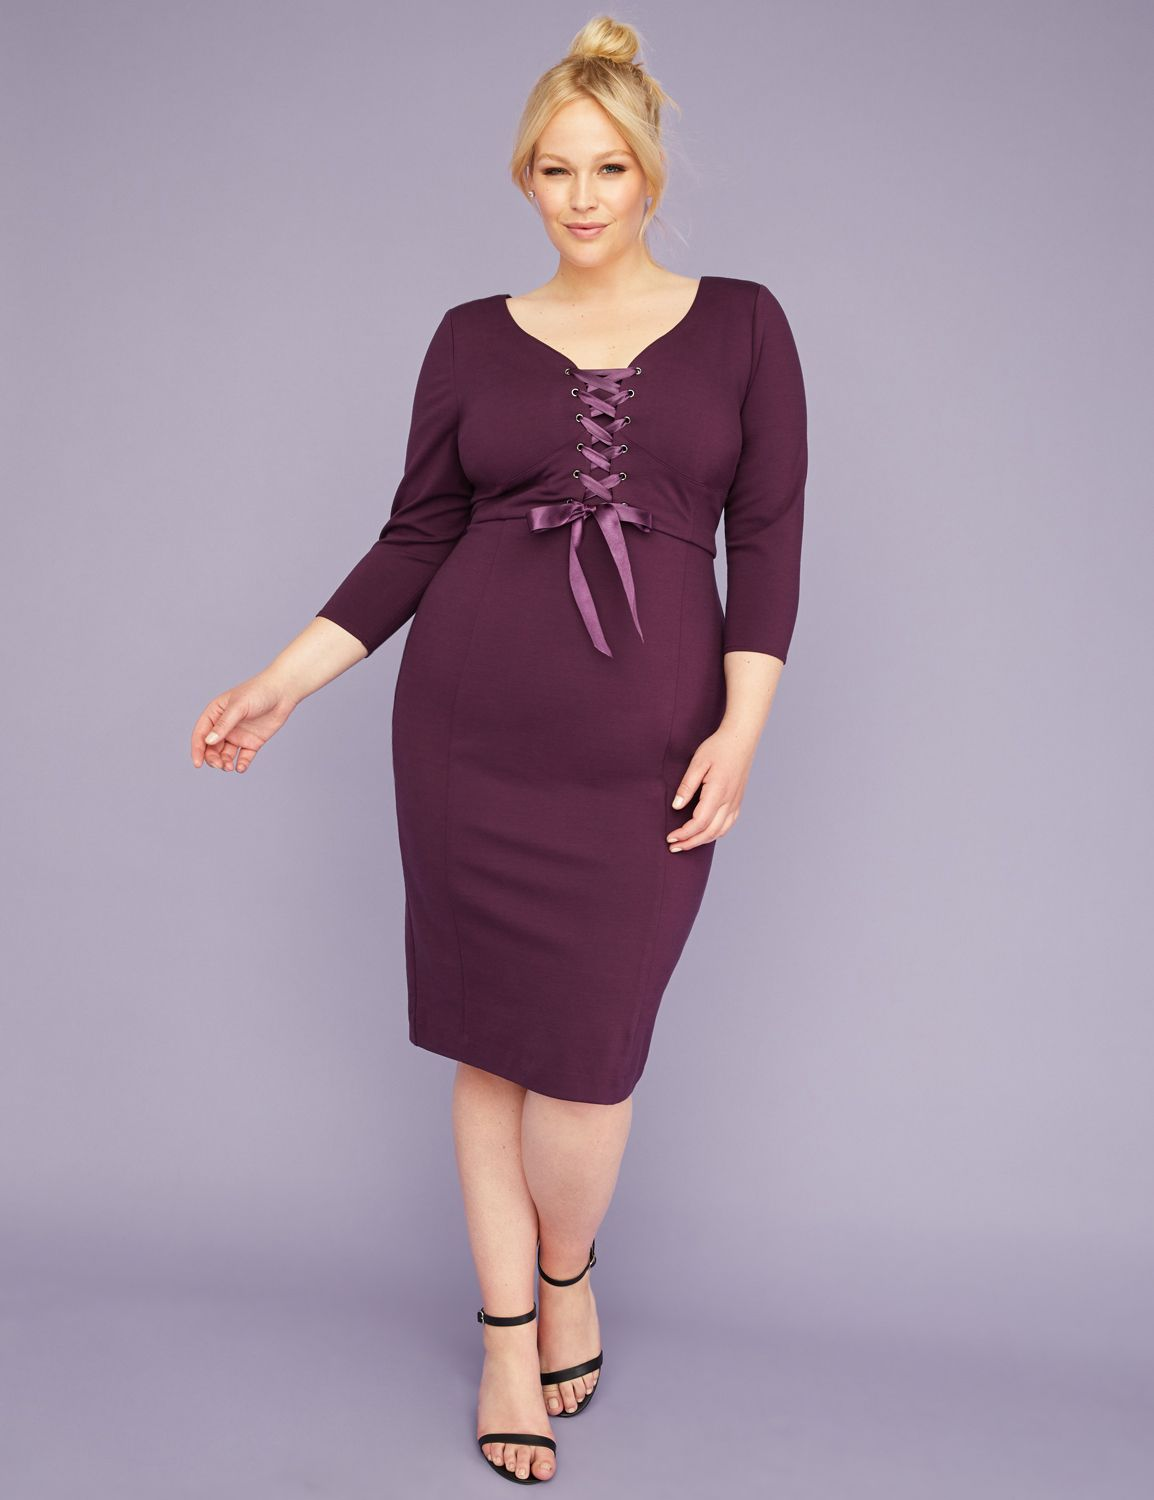 60s 70s Plus Size Dresses, Clothing, Costumes Lane Bryant Womens 34-Sleeve Corset Sheath Dress 24 Deep Eggplant $99.95 AT vintagedancer.com